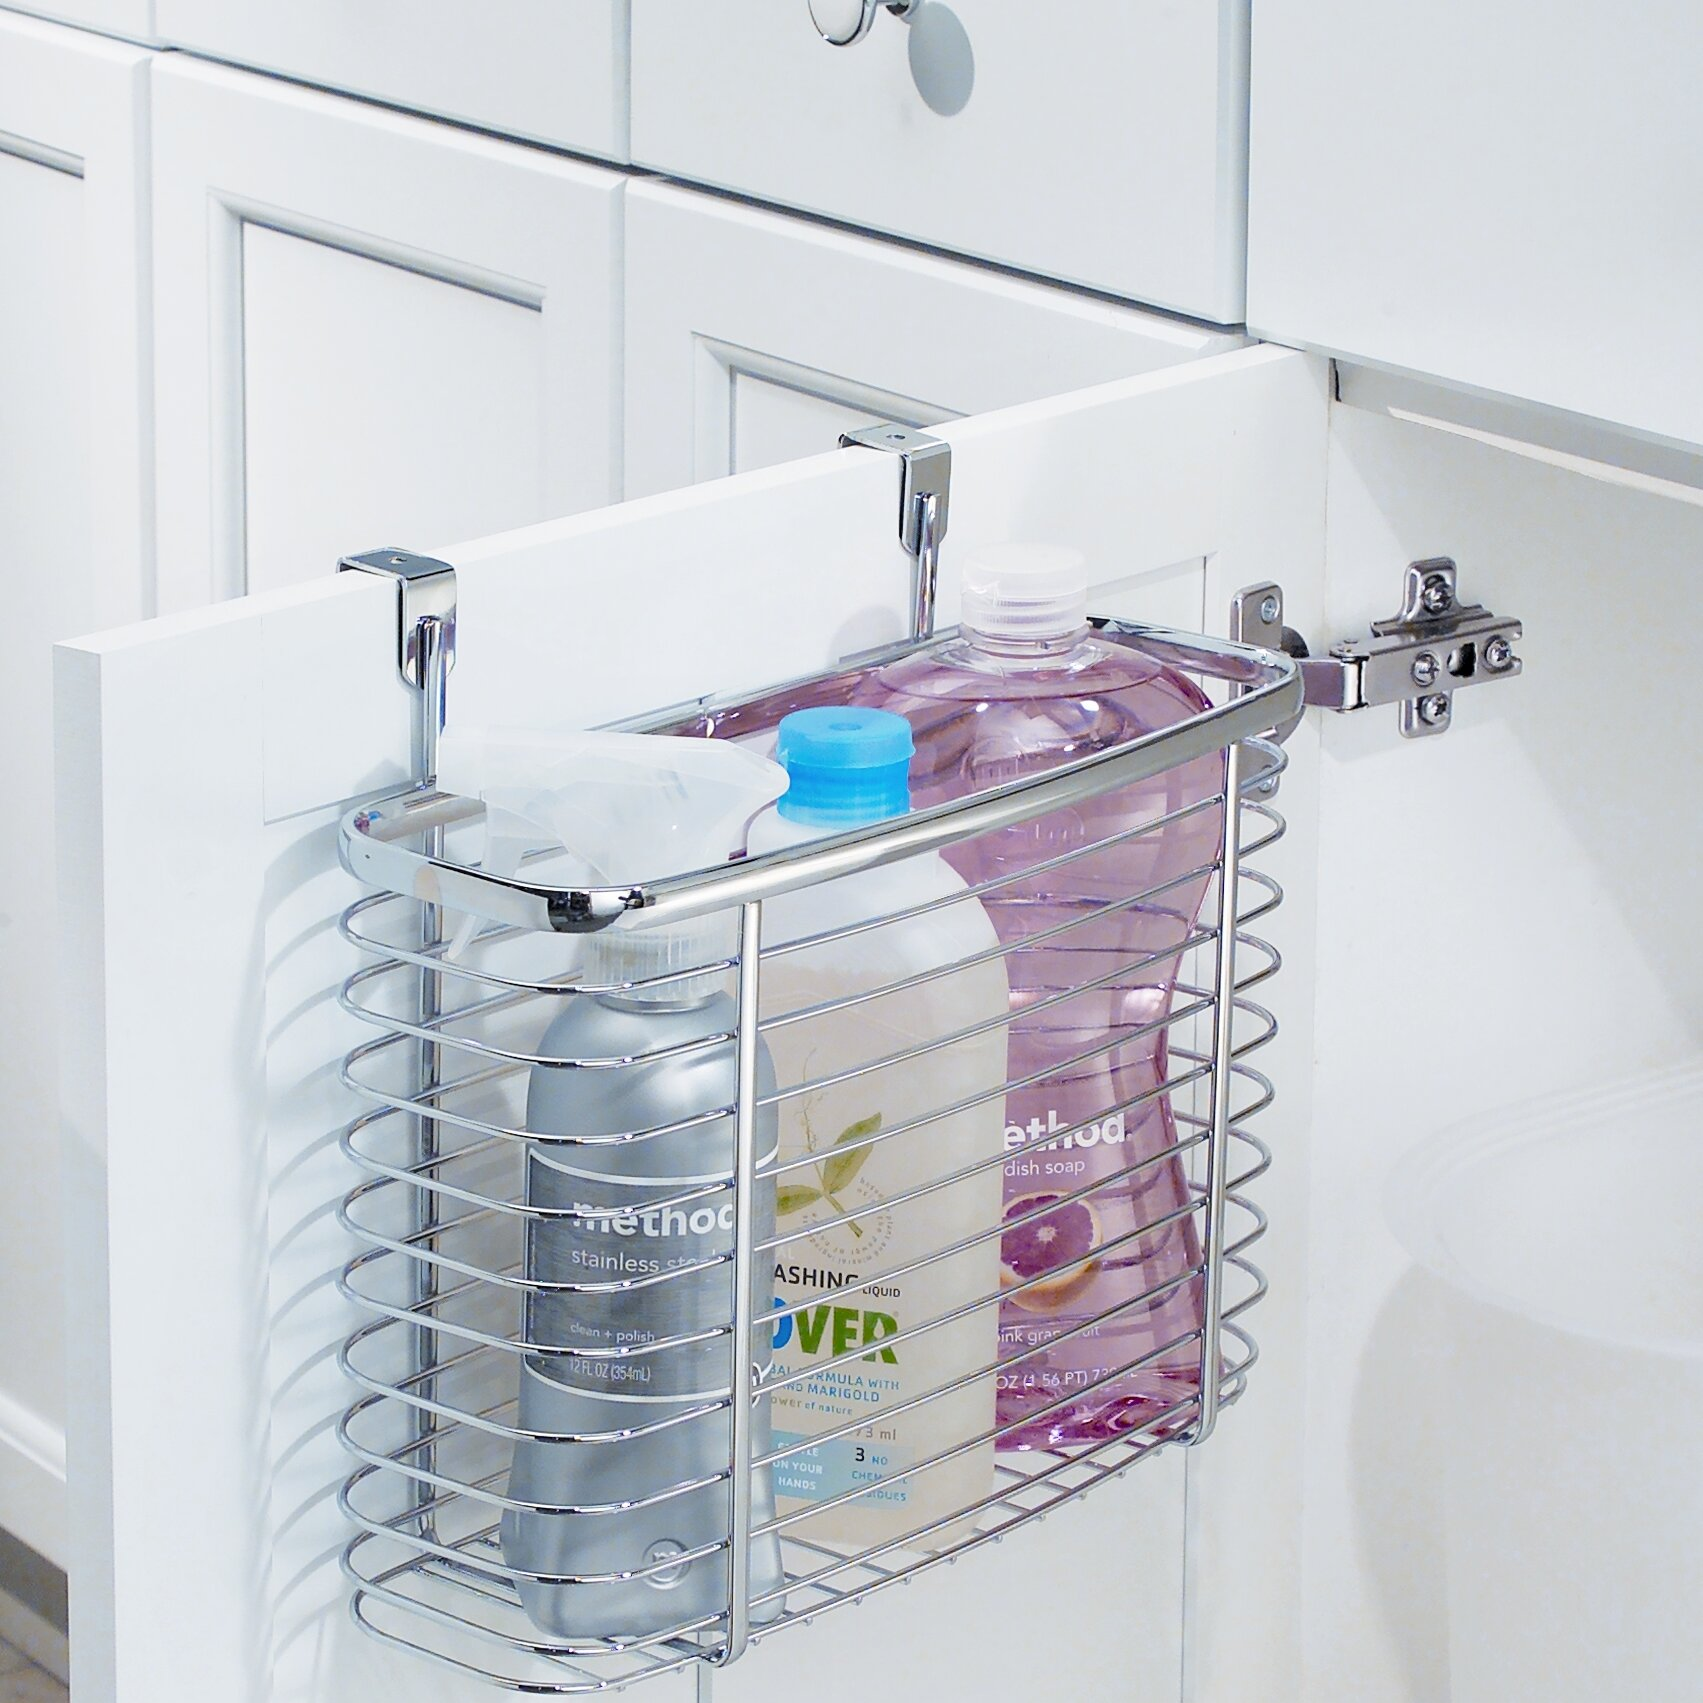 Bathroom cabinet door organizer - Axis Cabinet Door Organizer